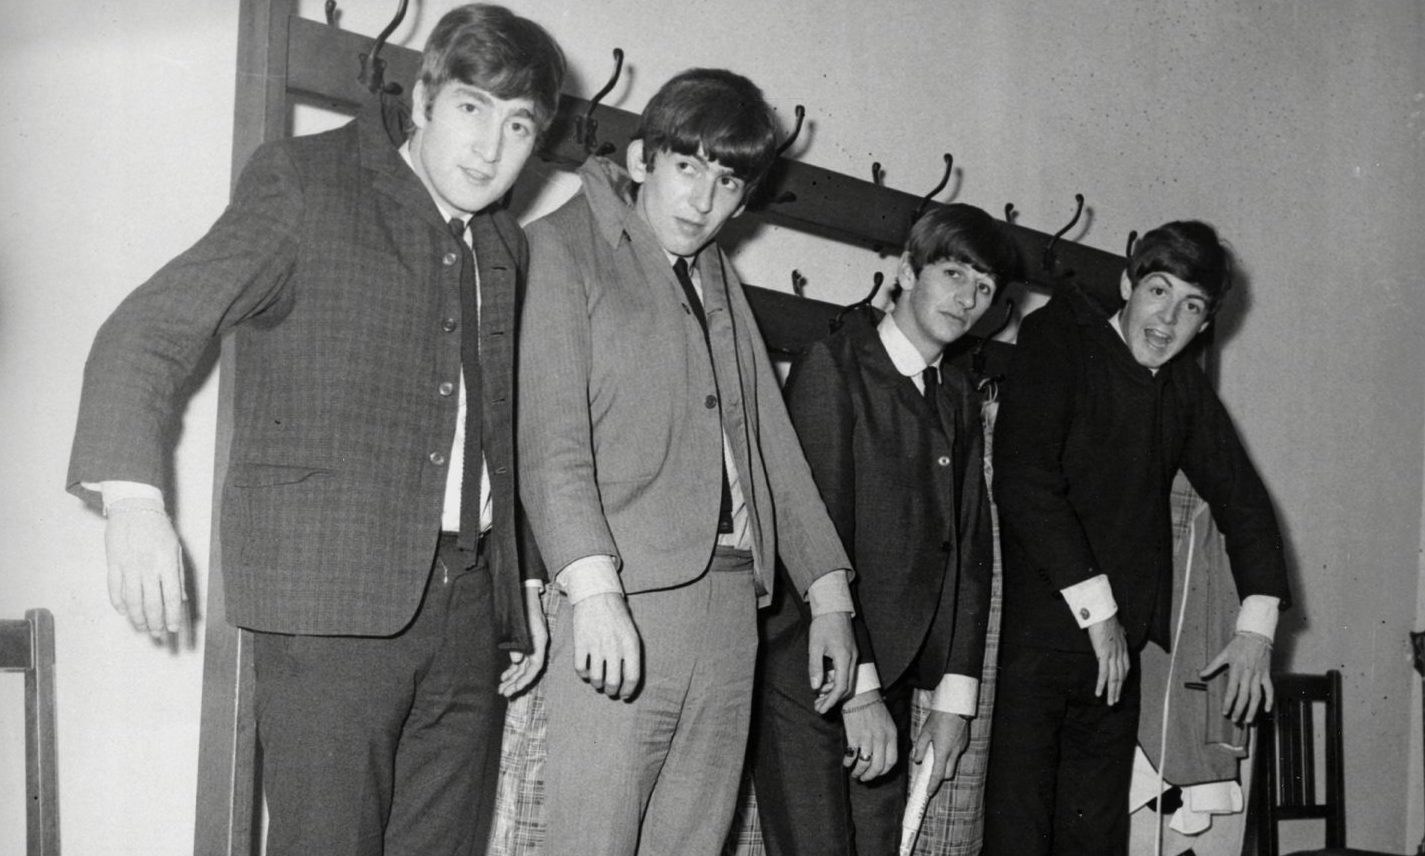 The Beatles hang out back stage at the Caird Hall.